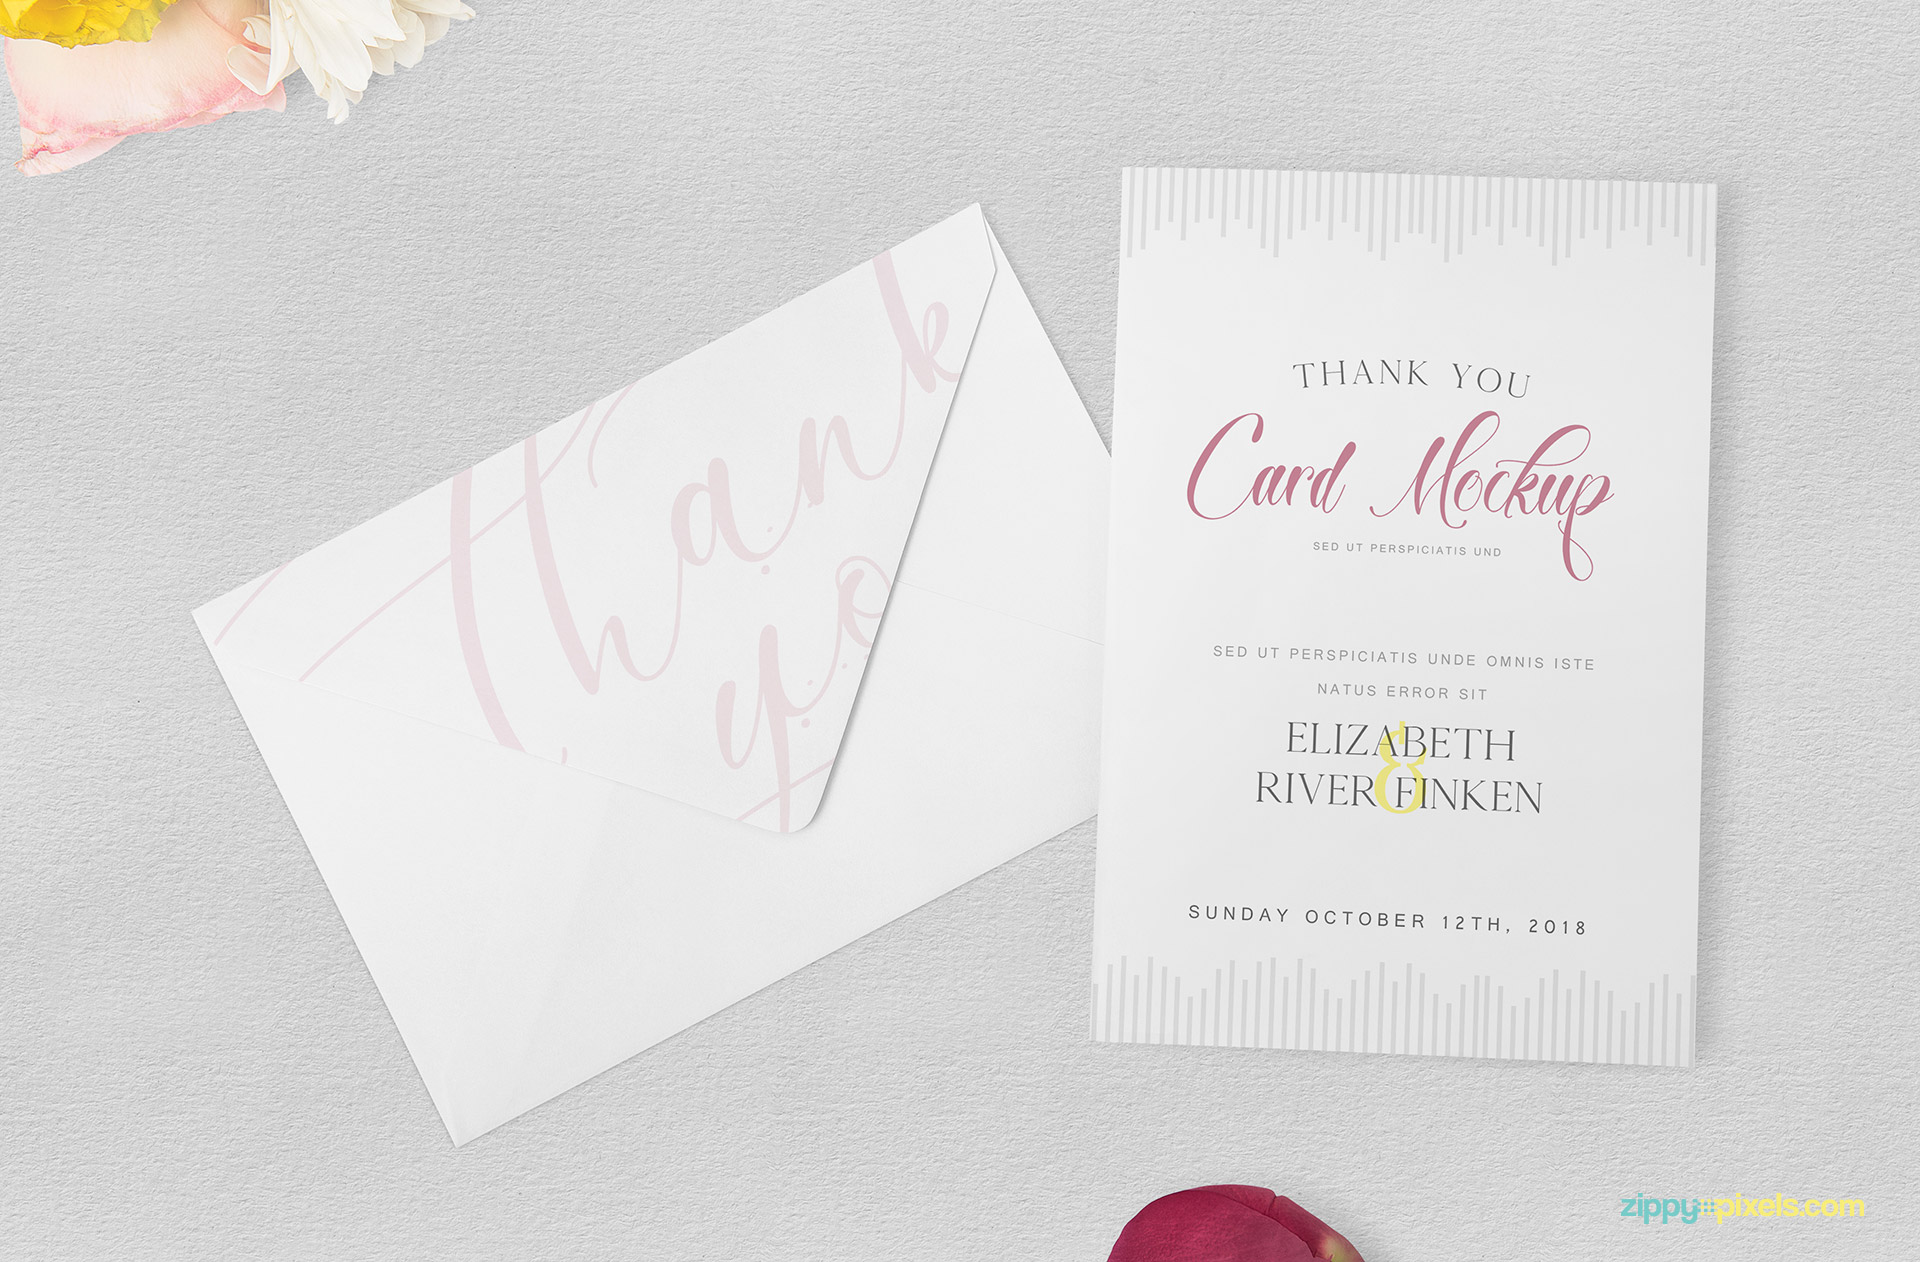 Graceful thank you card mockup.